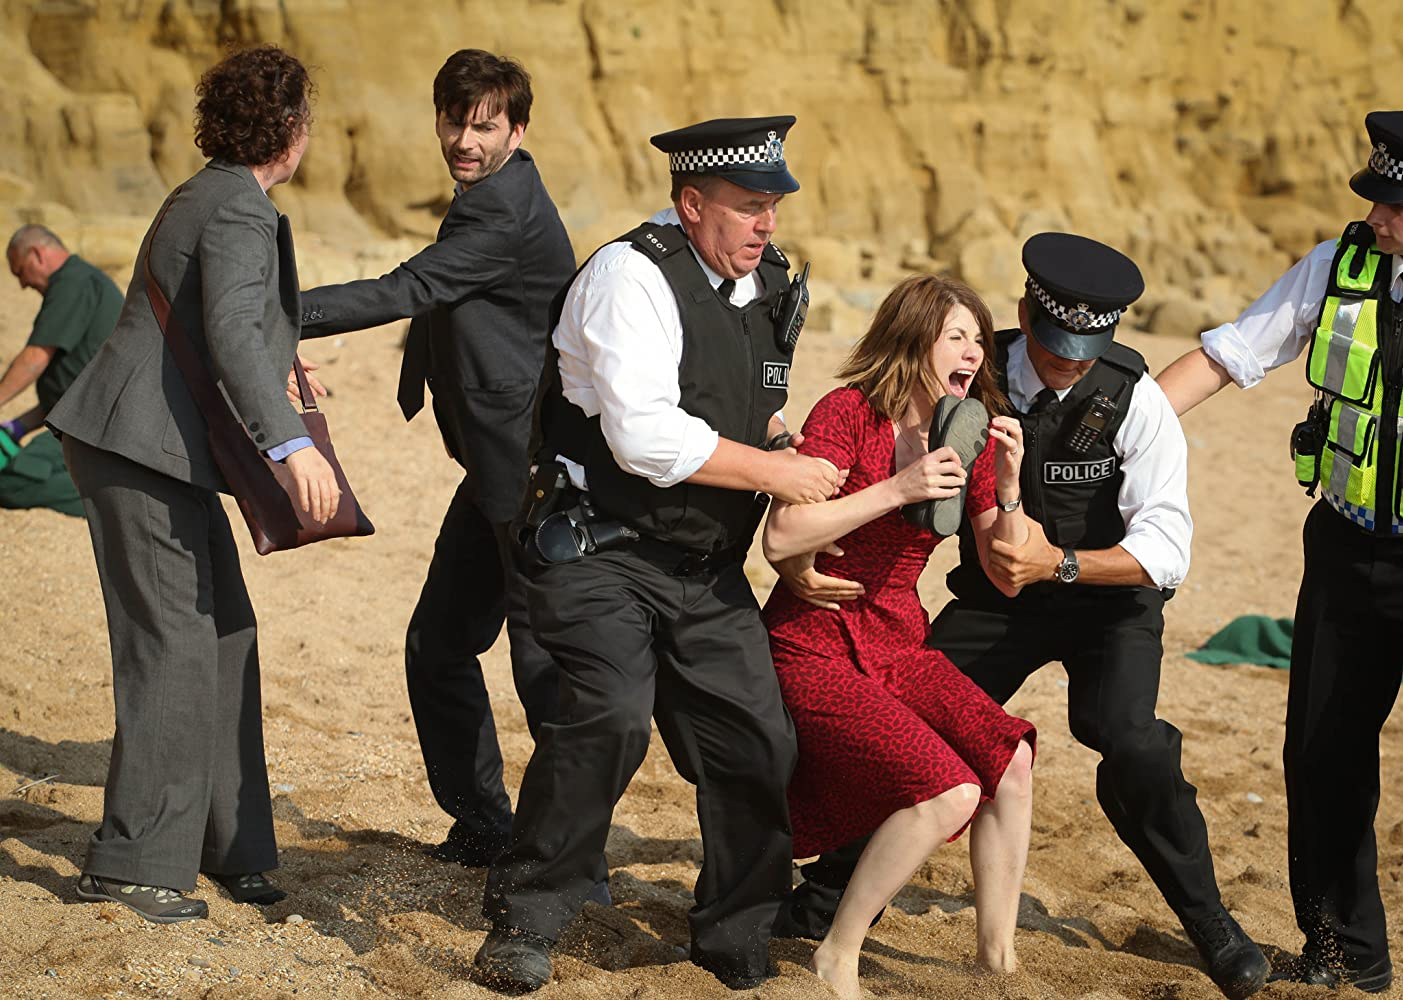 David Tennant, Steve Bennett, Olivia Colman, and Jodie Whittaker in Broadchurch (2013)